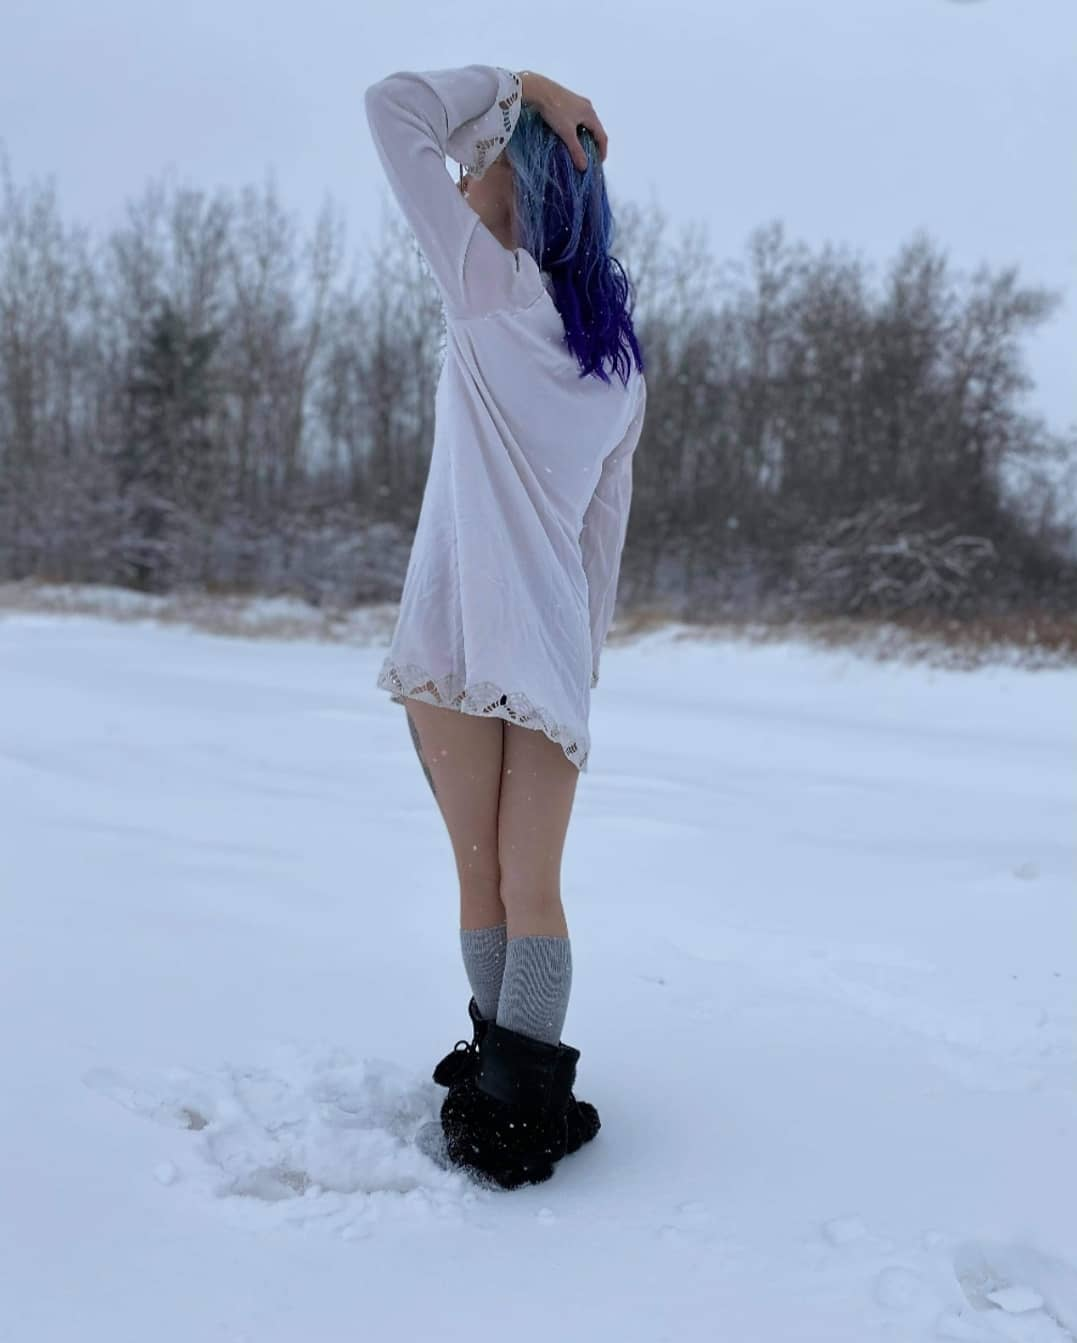 Beautiful Canadian goth snow queen Tora Reign @tora_reign shot from the back holding one arm up showing her sexy thighs and silhouette doing a sensual outdoor photoshoot